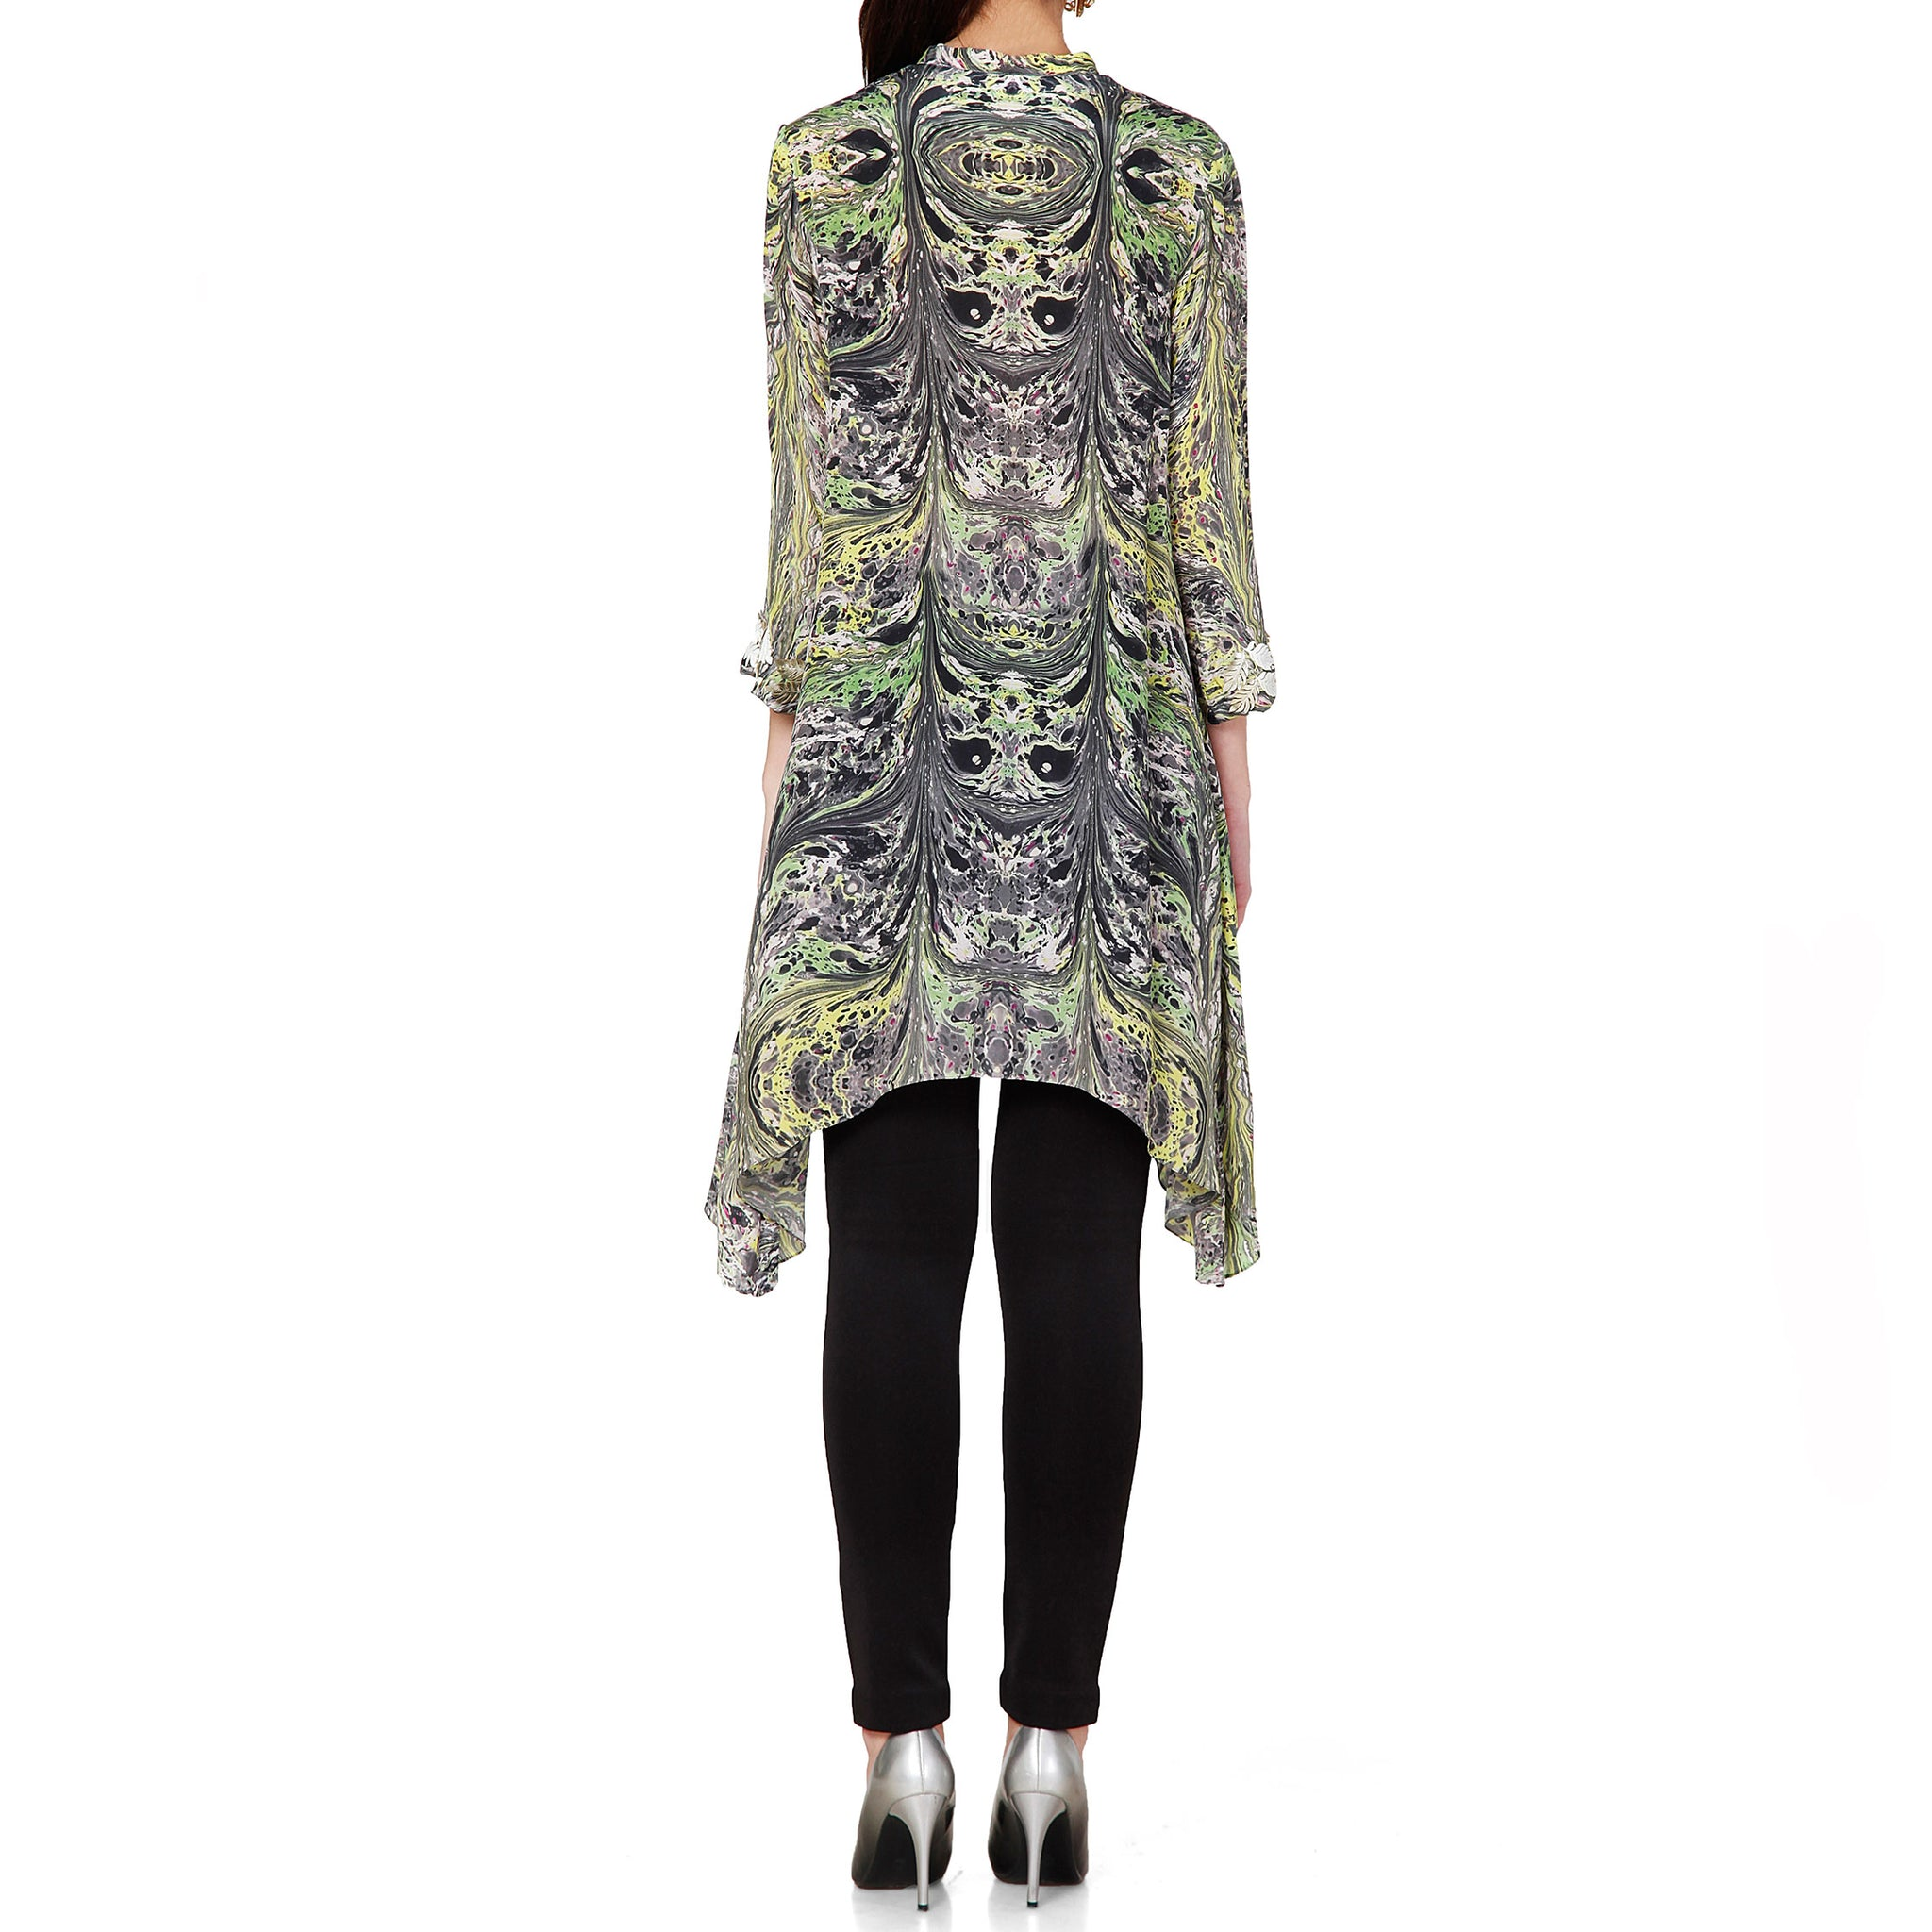 Asymmetric Tunic with Cut-work Embroidery